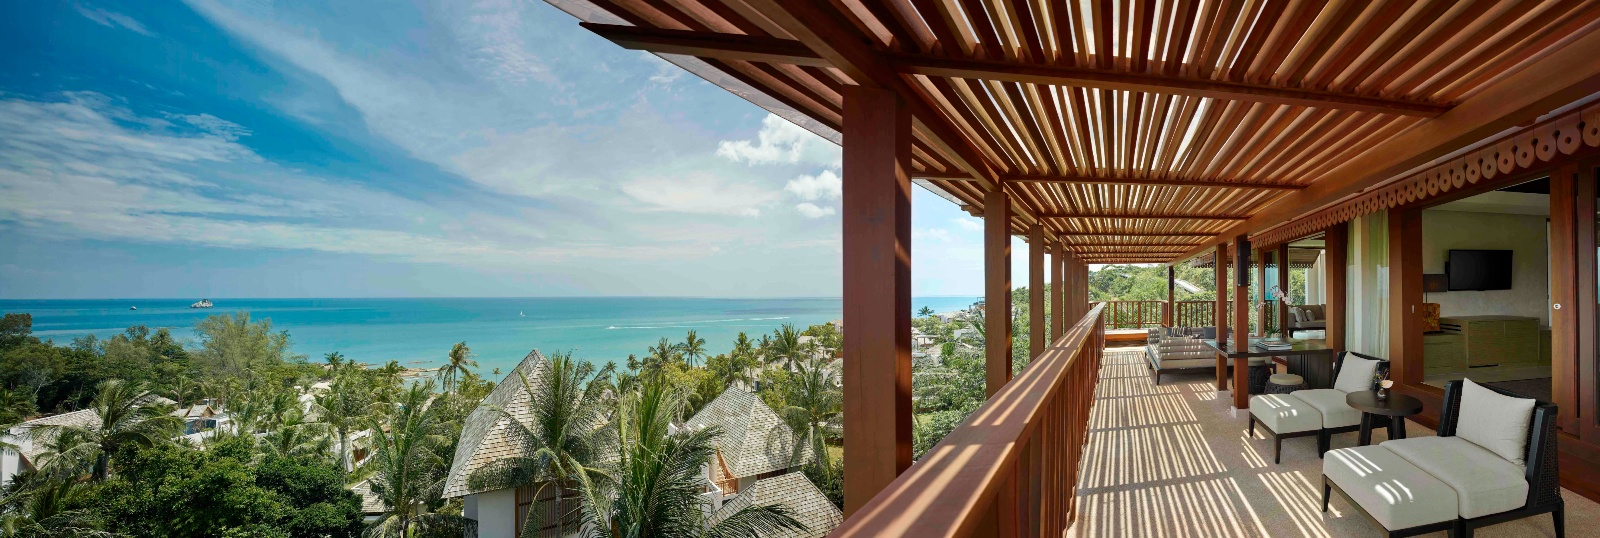 Phuket's Sandbox Programme Means The Ultimate Thai Getaway with YTL Hotels Is in Sight